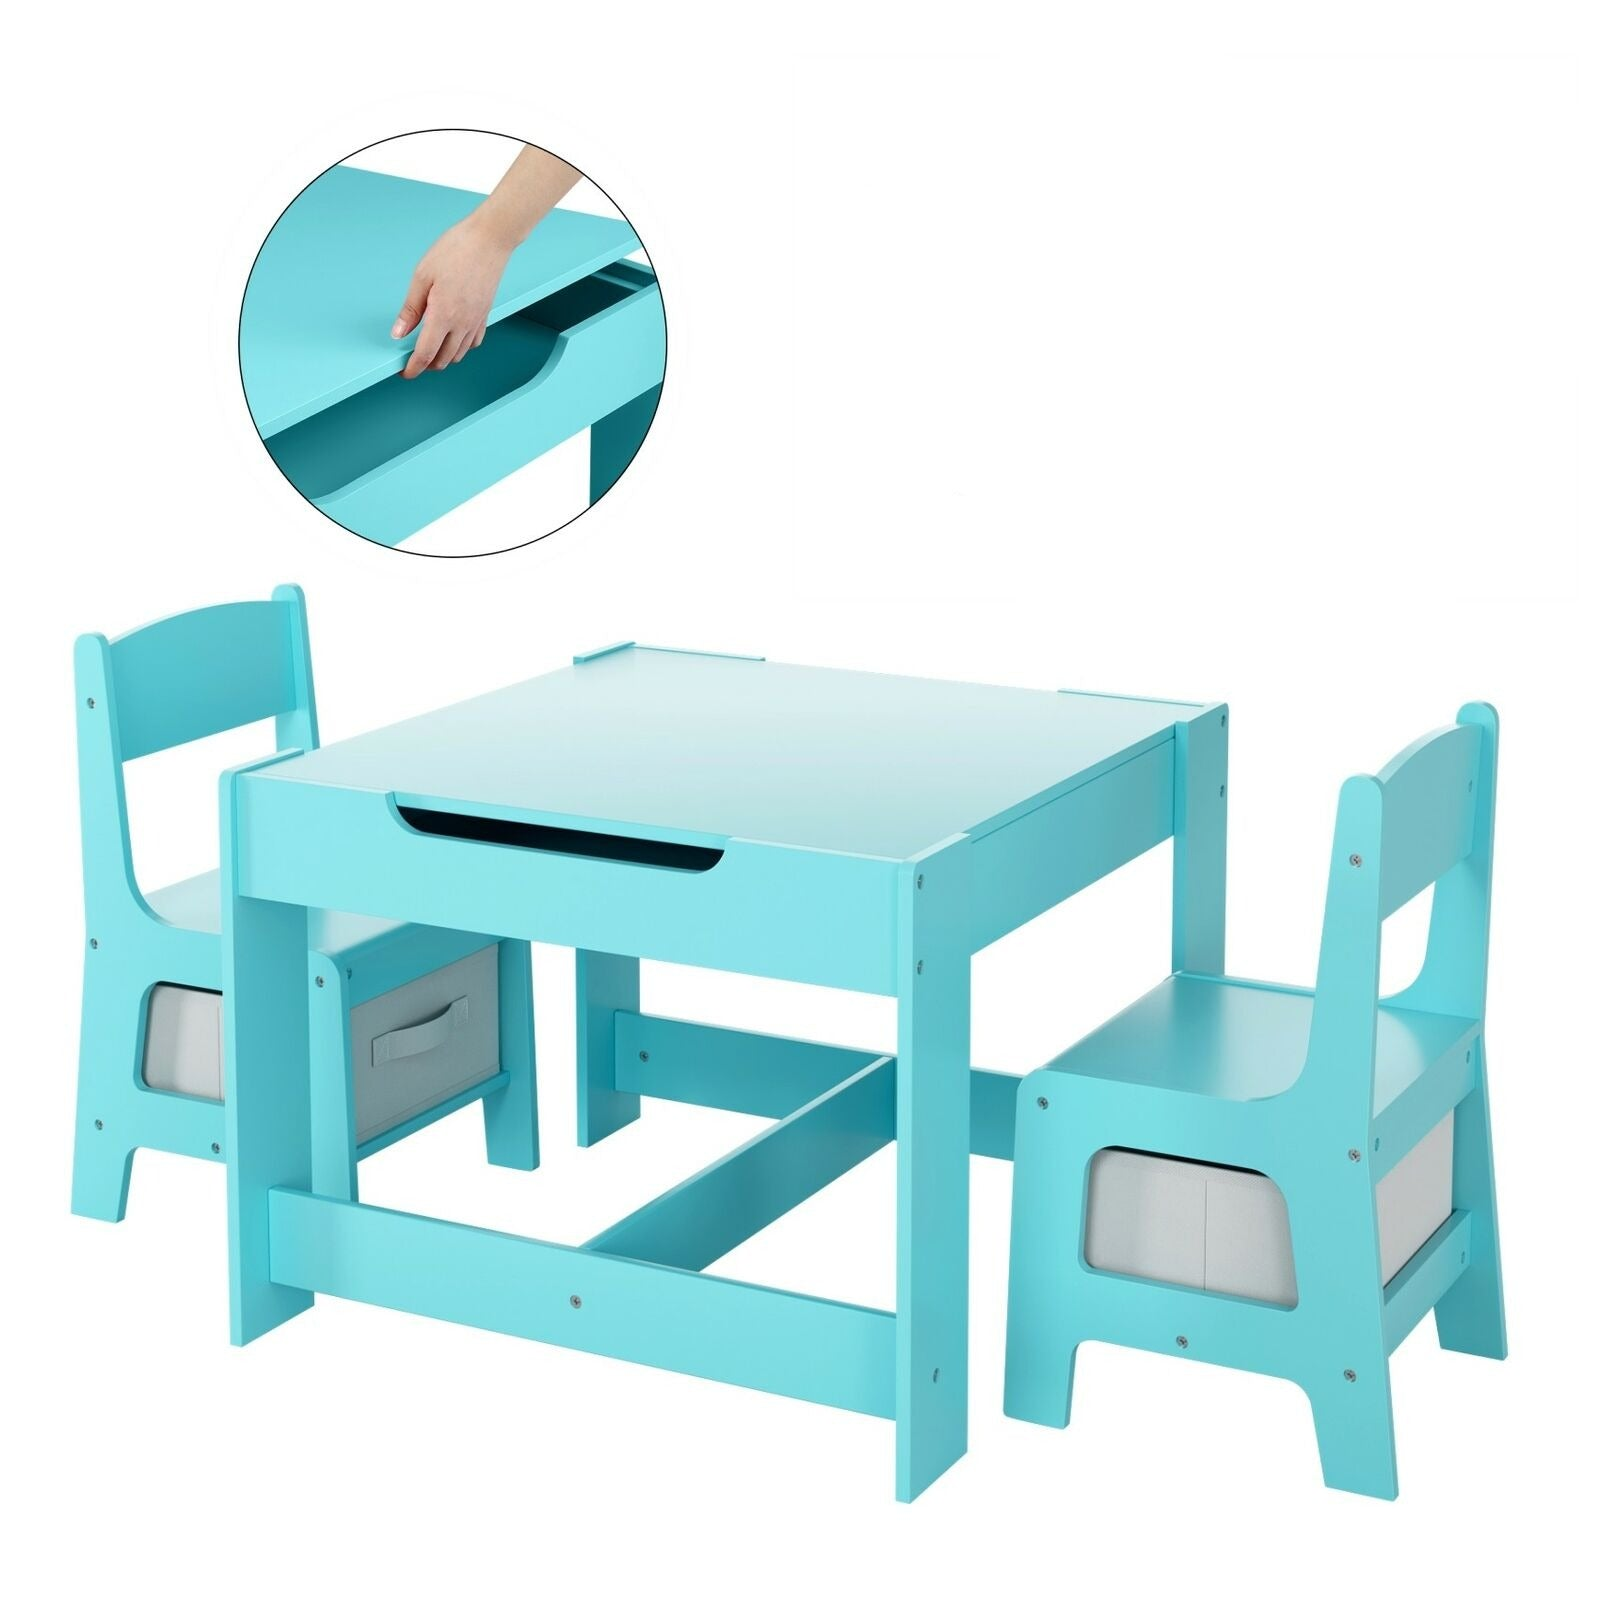 Kids Adjustable Desk Children Art Homework School Desk Chair Set - Morealis